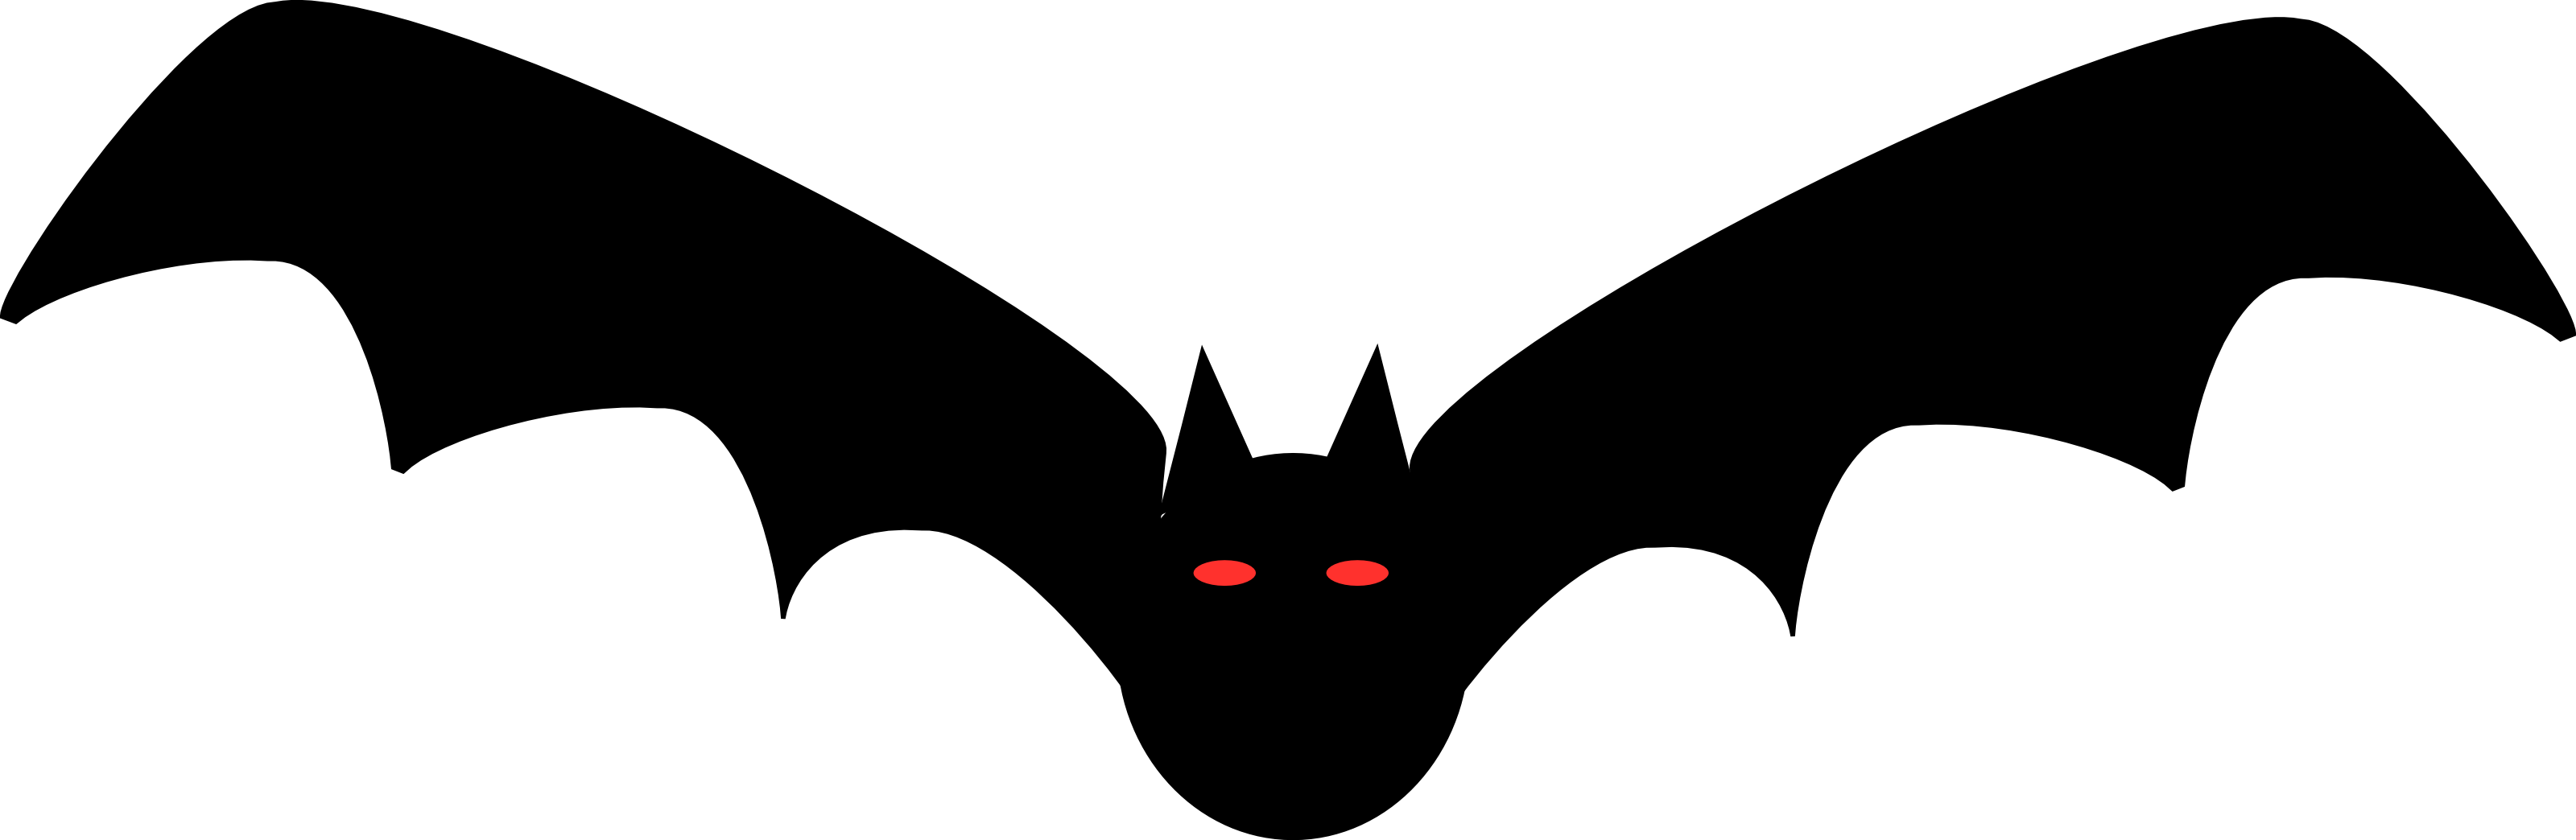 black demon eyes png